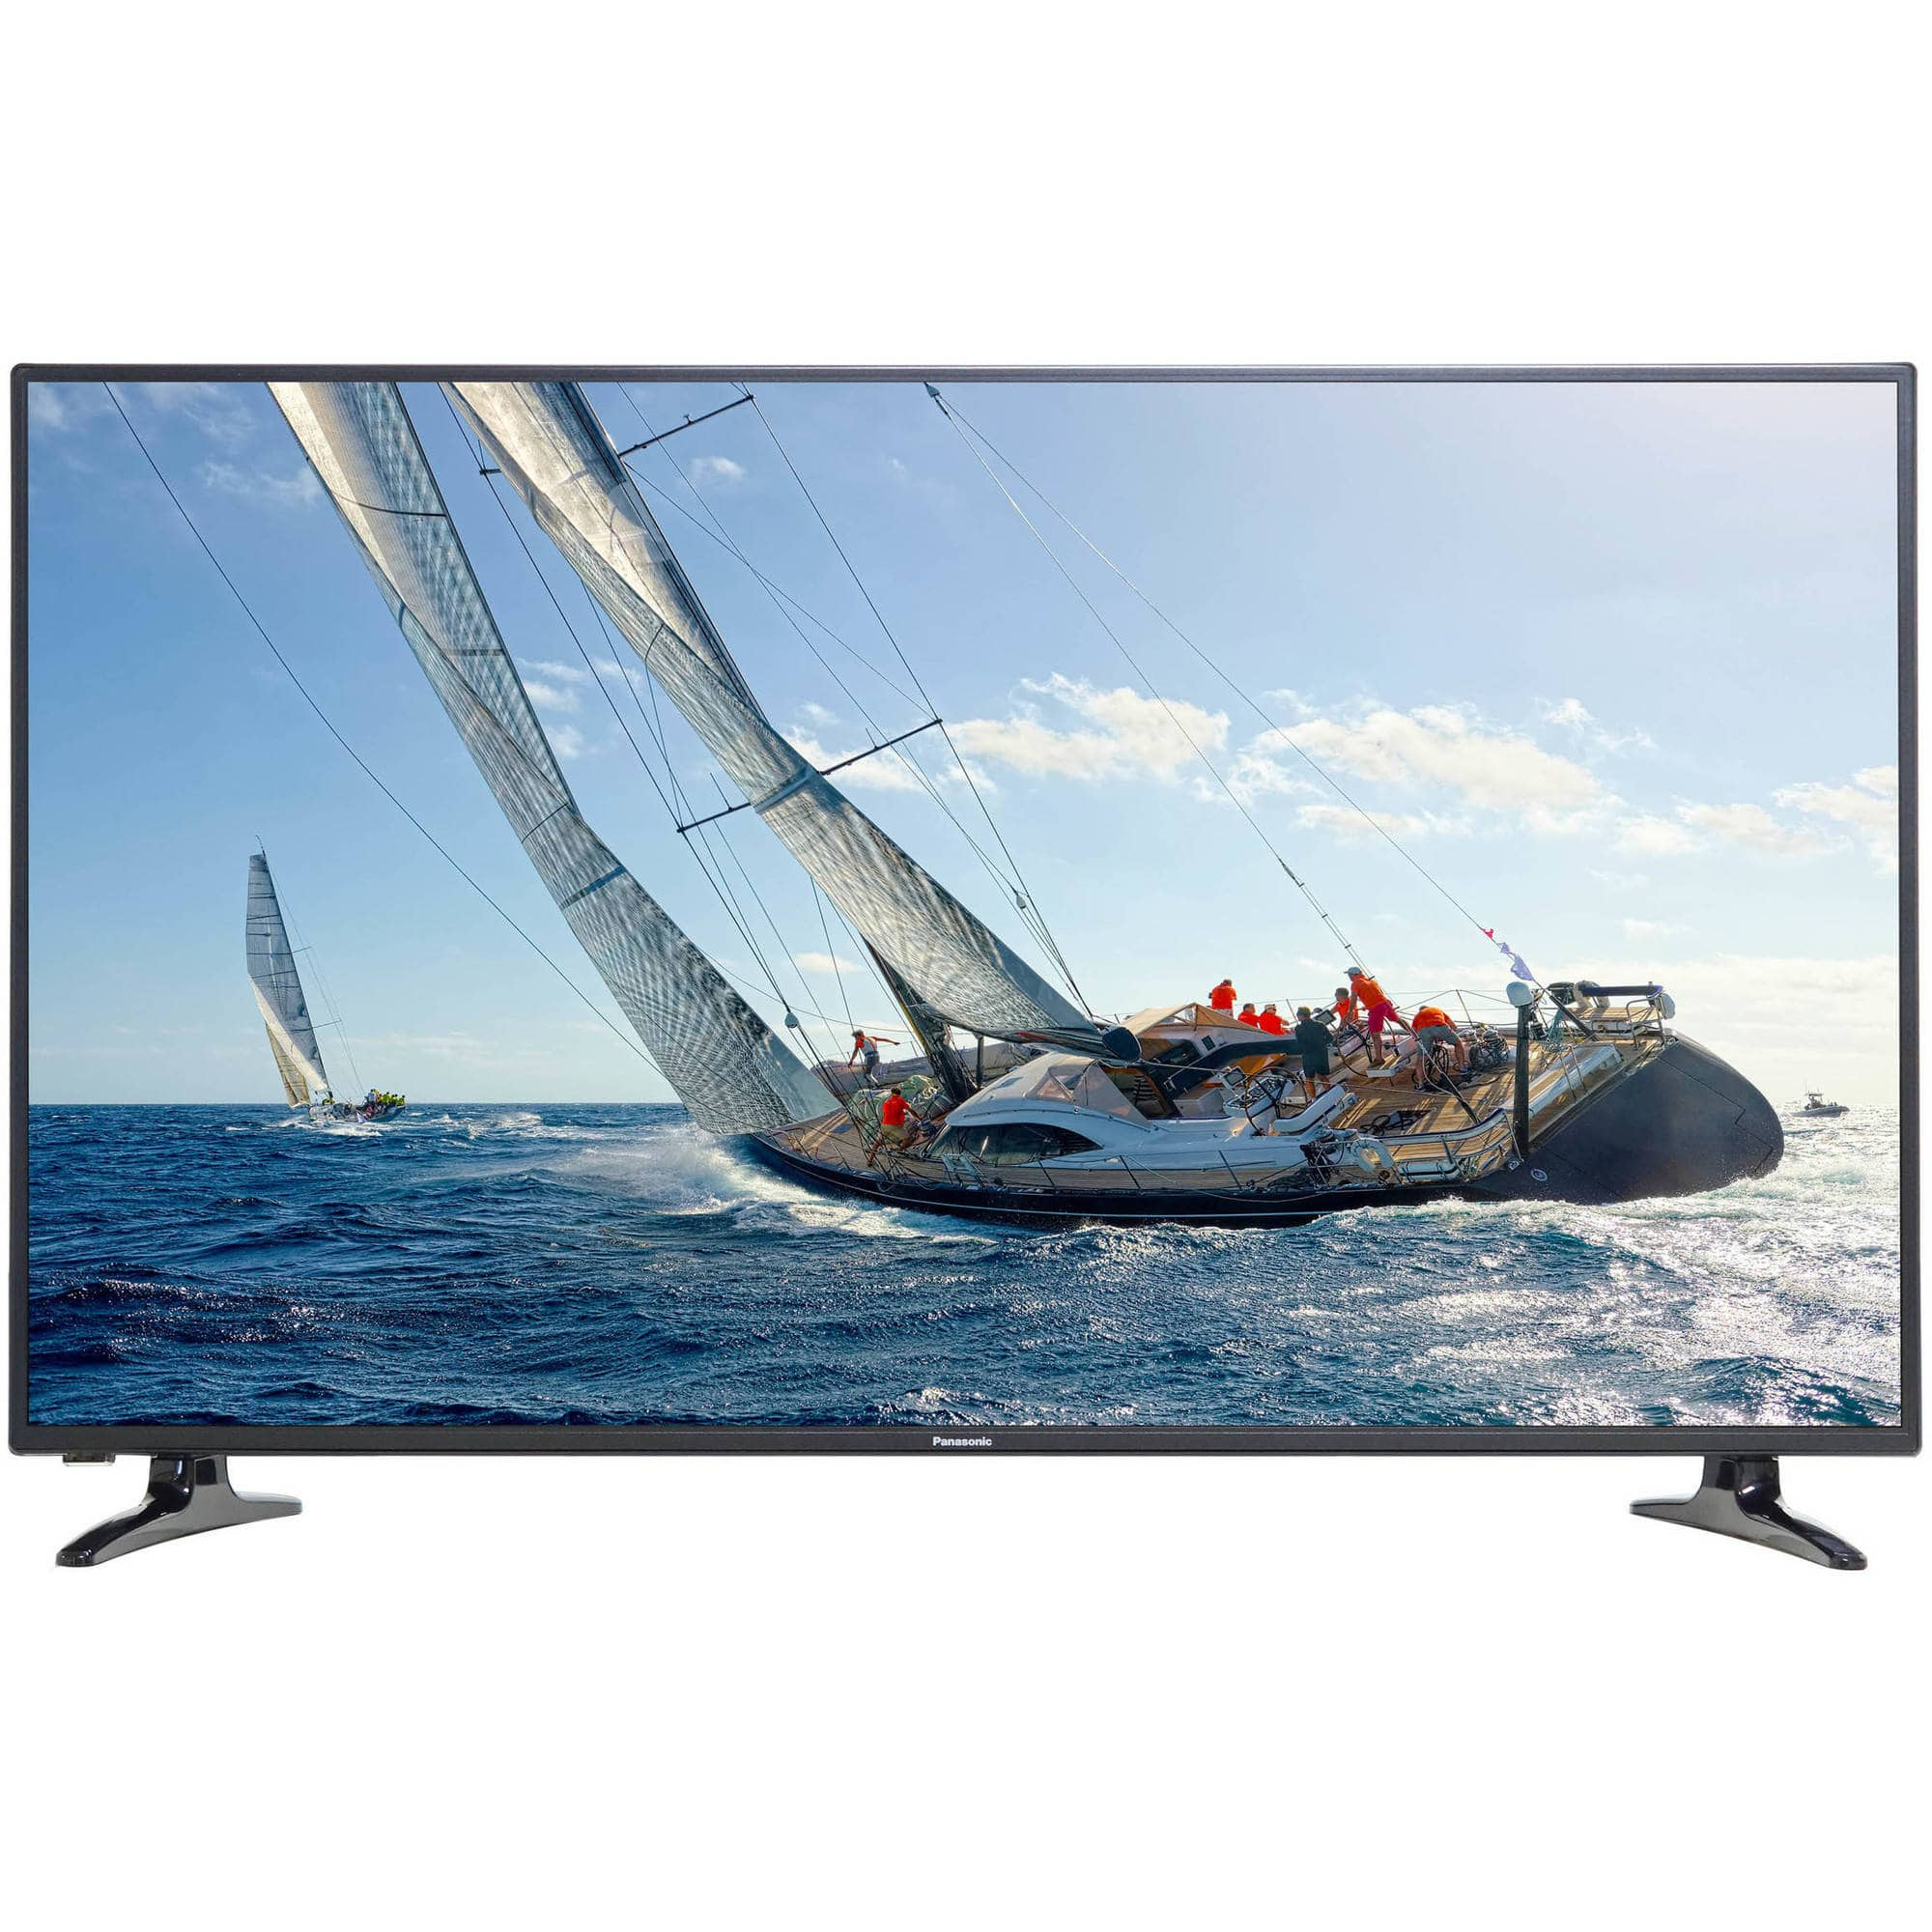 "50"" Panasonic TC-50CX400U 4K UHD Smart LED HDTV $399.99 + Free Shipping / Free Store Pickup @ Walmart"